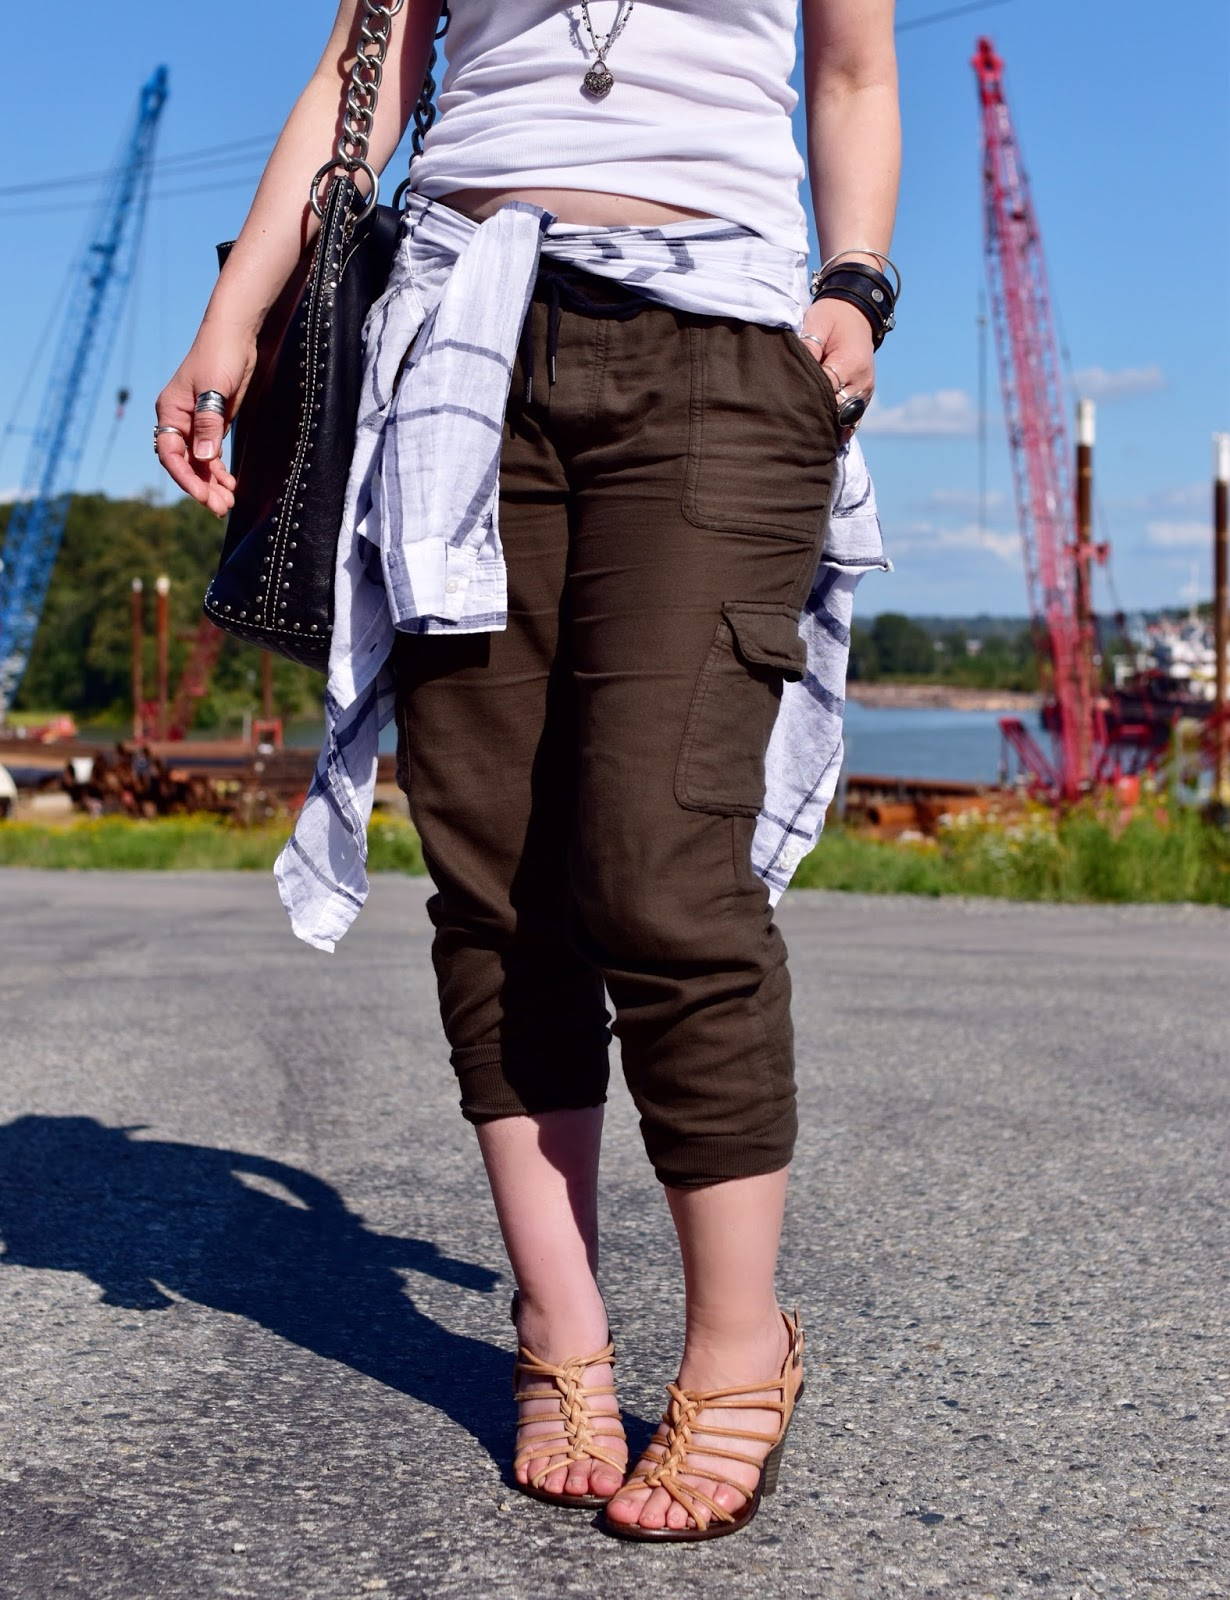 slouchy cargos, waist-tied plaid shirt, strappy nude sandals, and studded MK bag